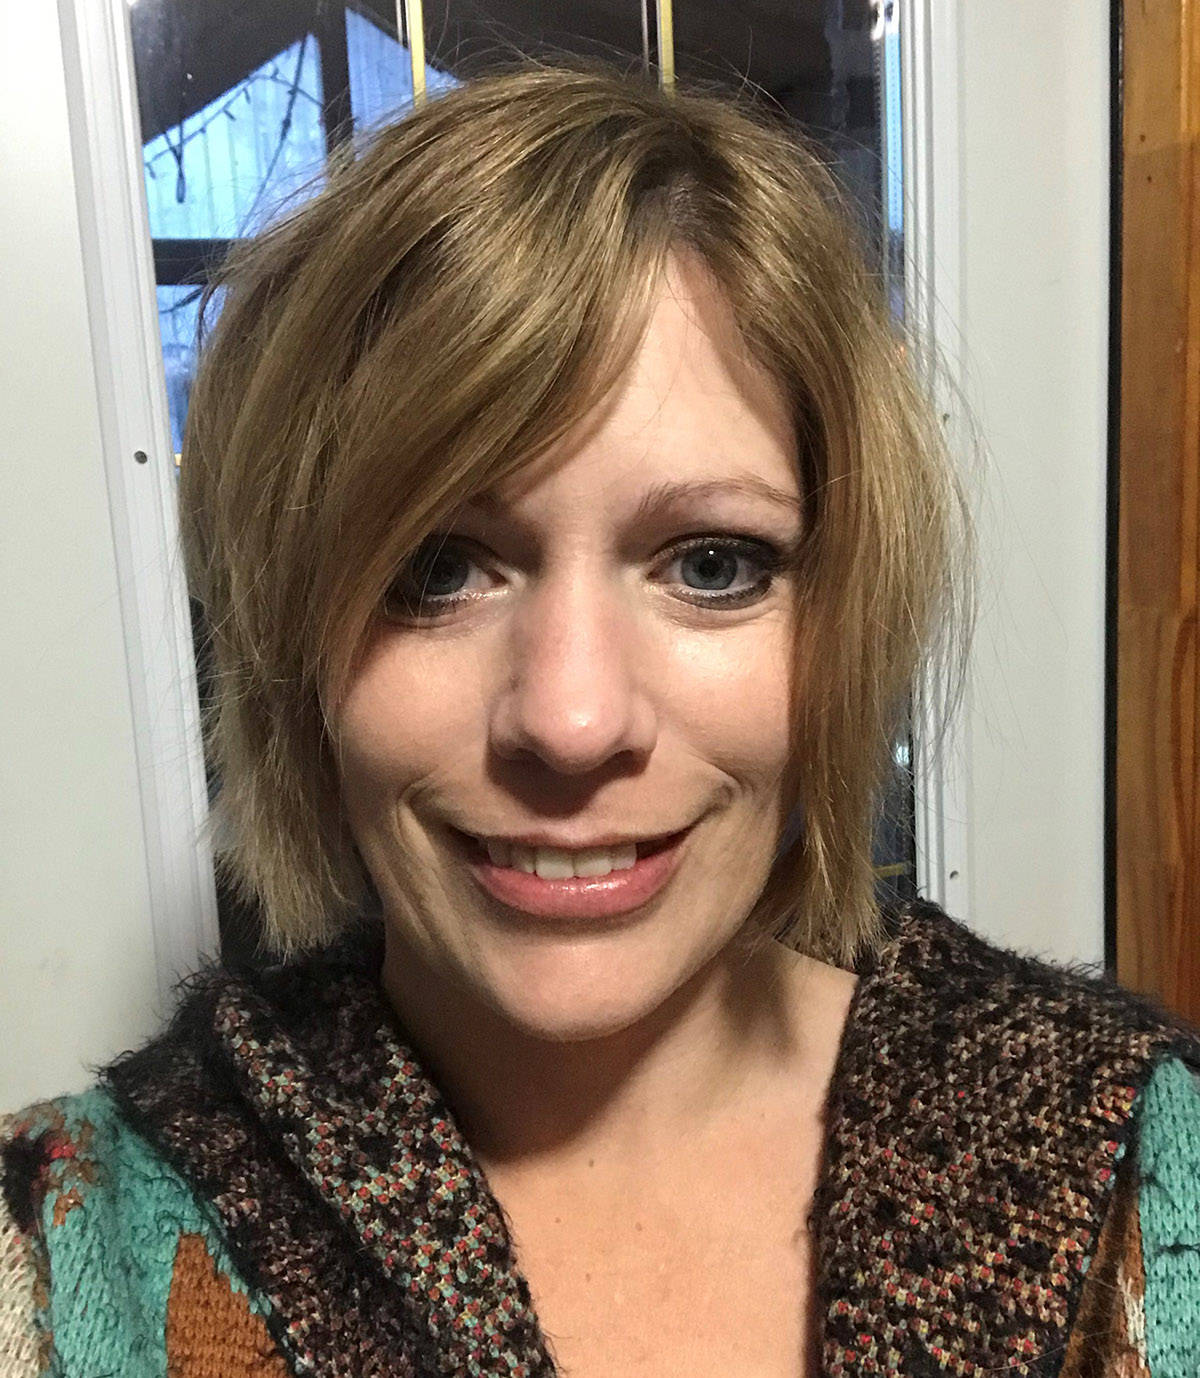 The body of Brenda Ware, 35, was found along Highway 93 in Kootenay National Park on Thursday, May 6, 2021. (RCMP handout)